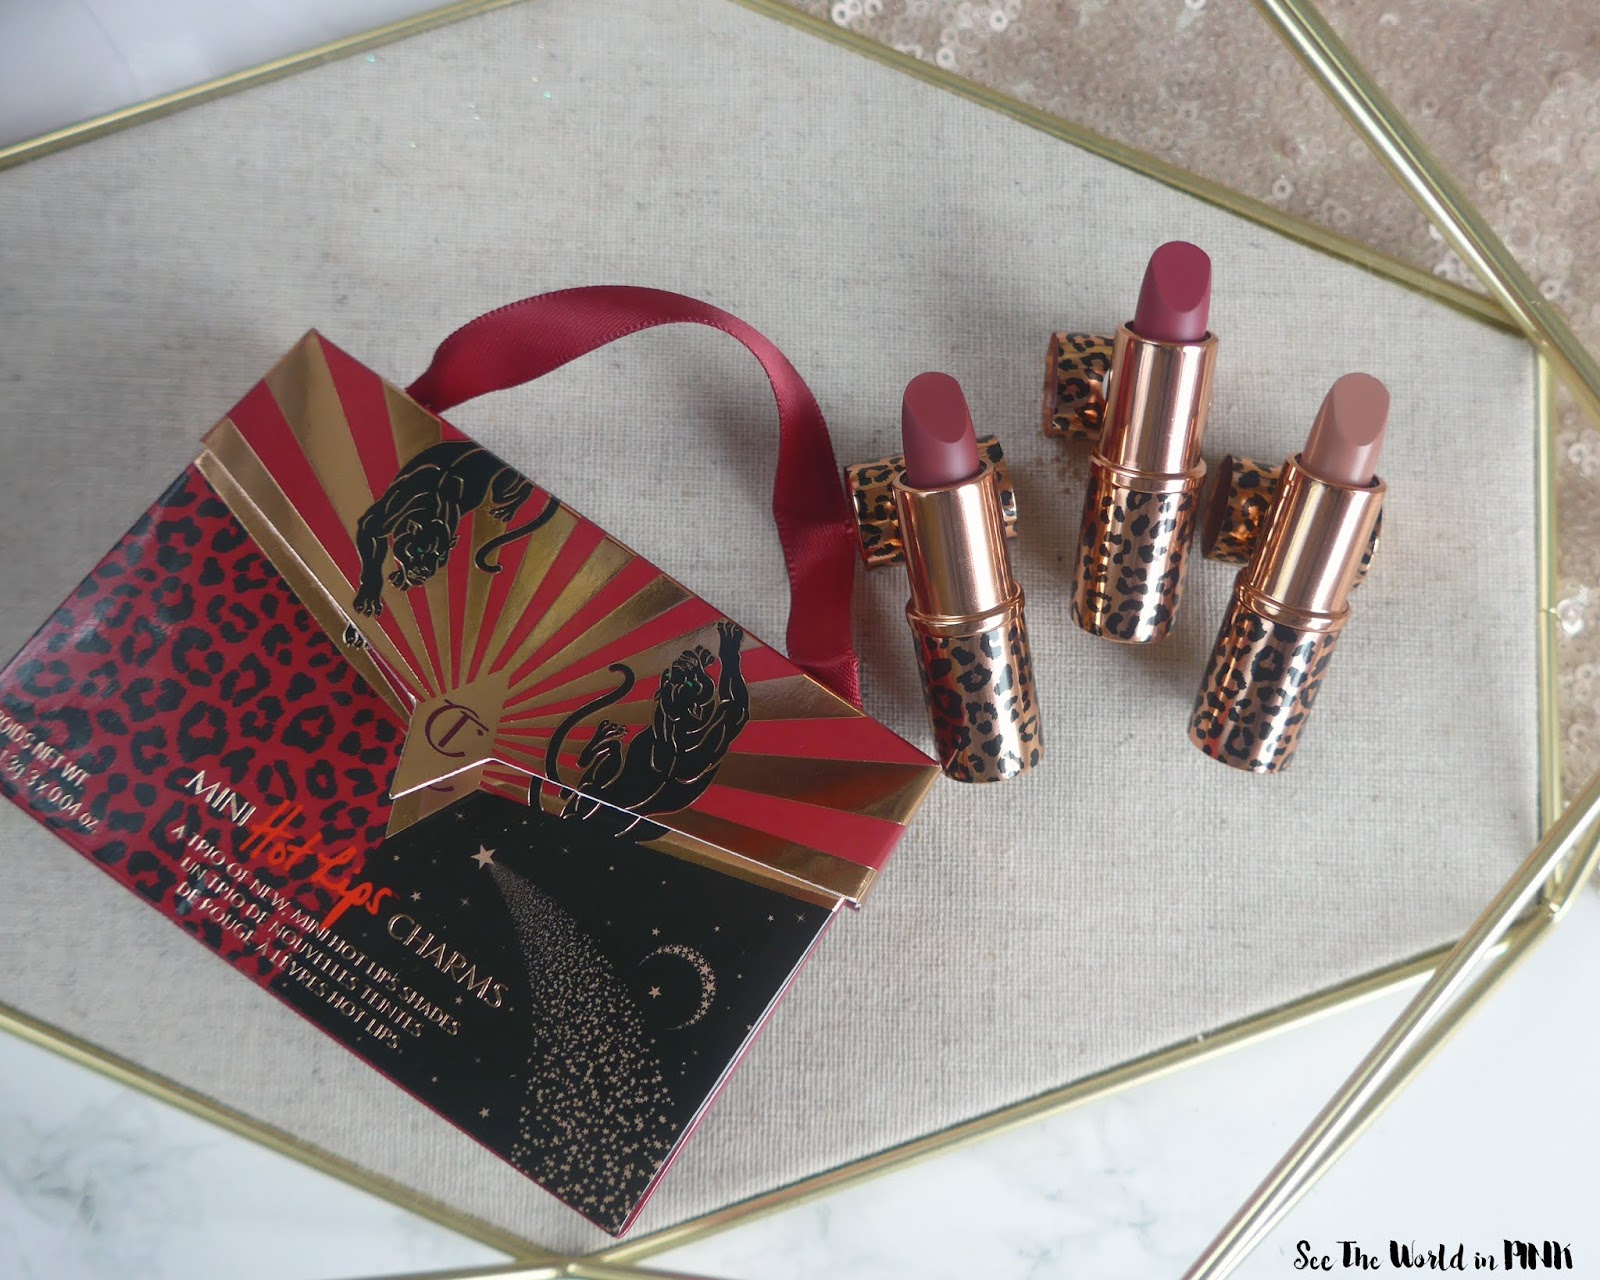 Charlotte Tilbury Hot Lips 2 Mini Lip Set-色板,试戴和评论!